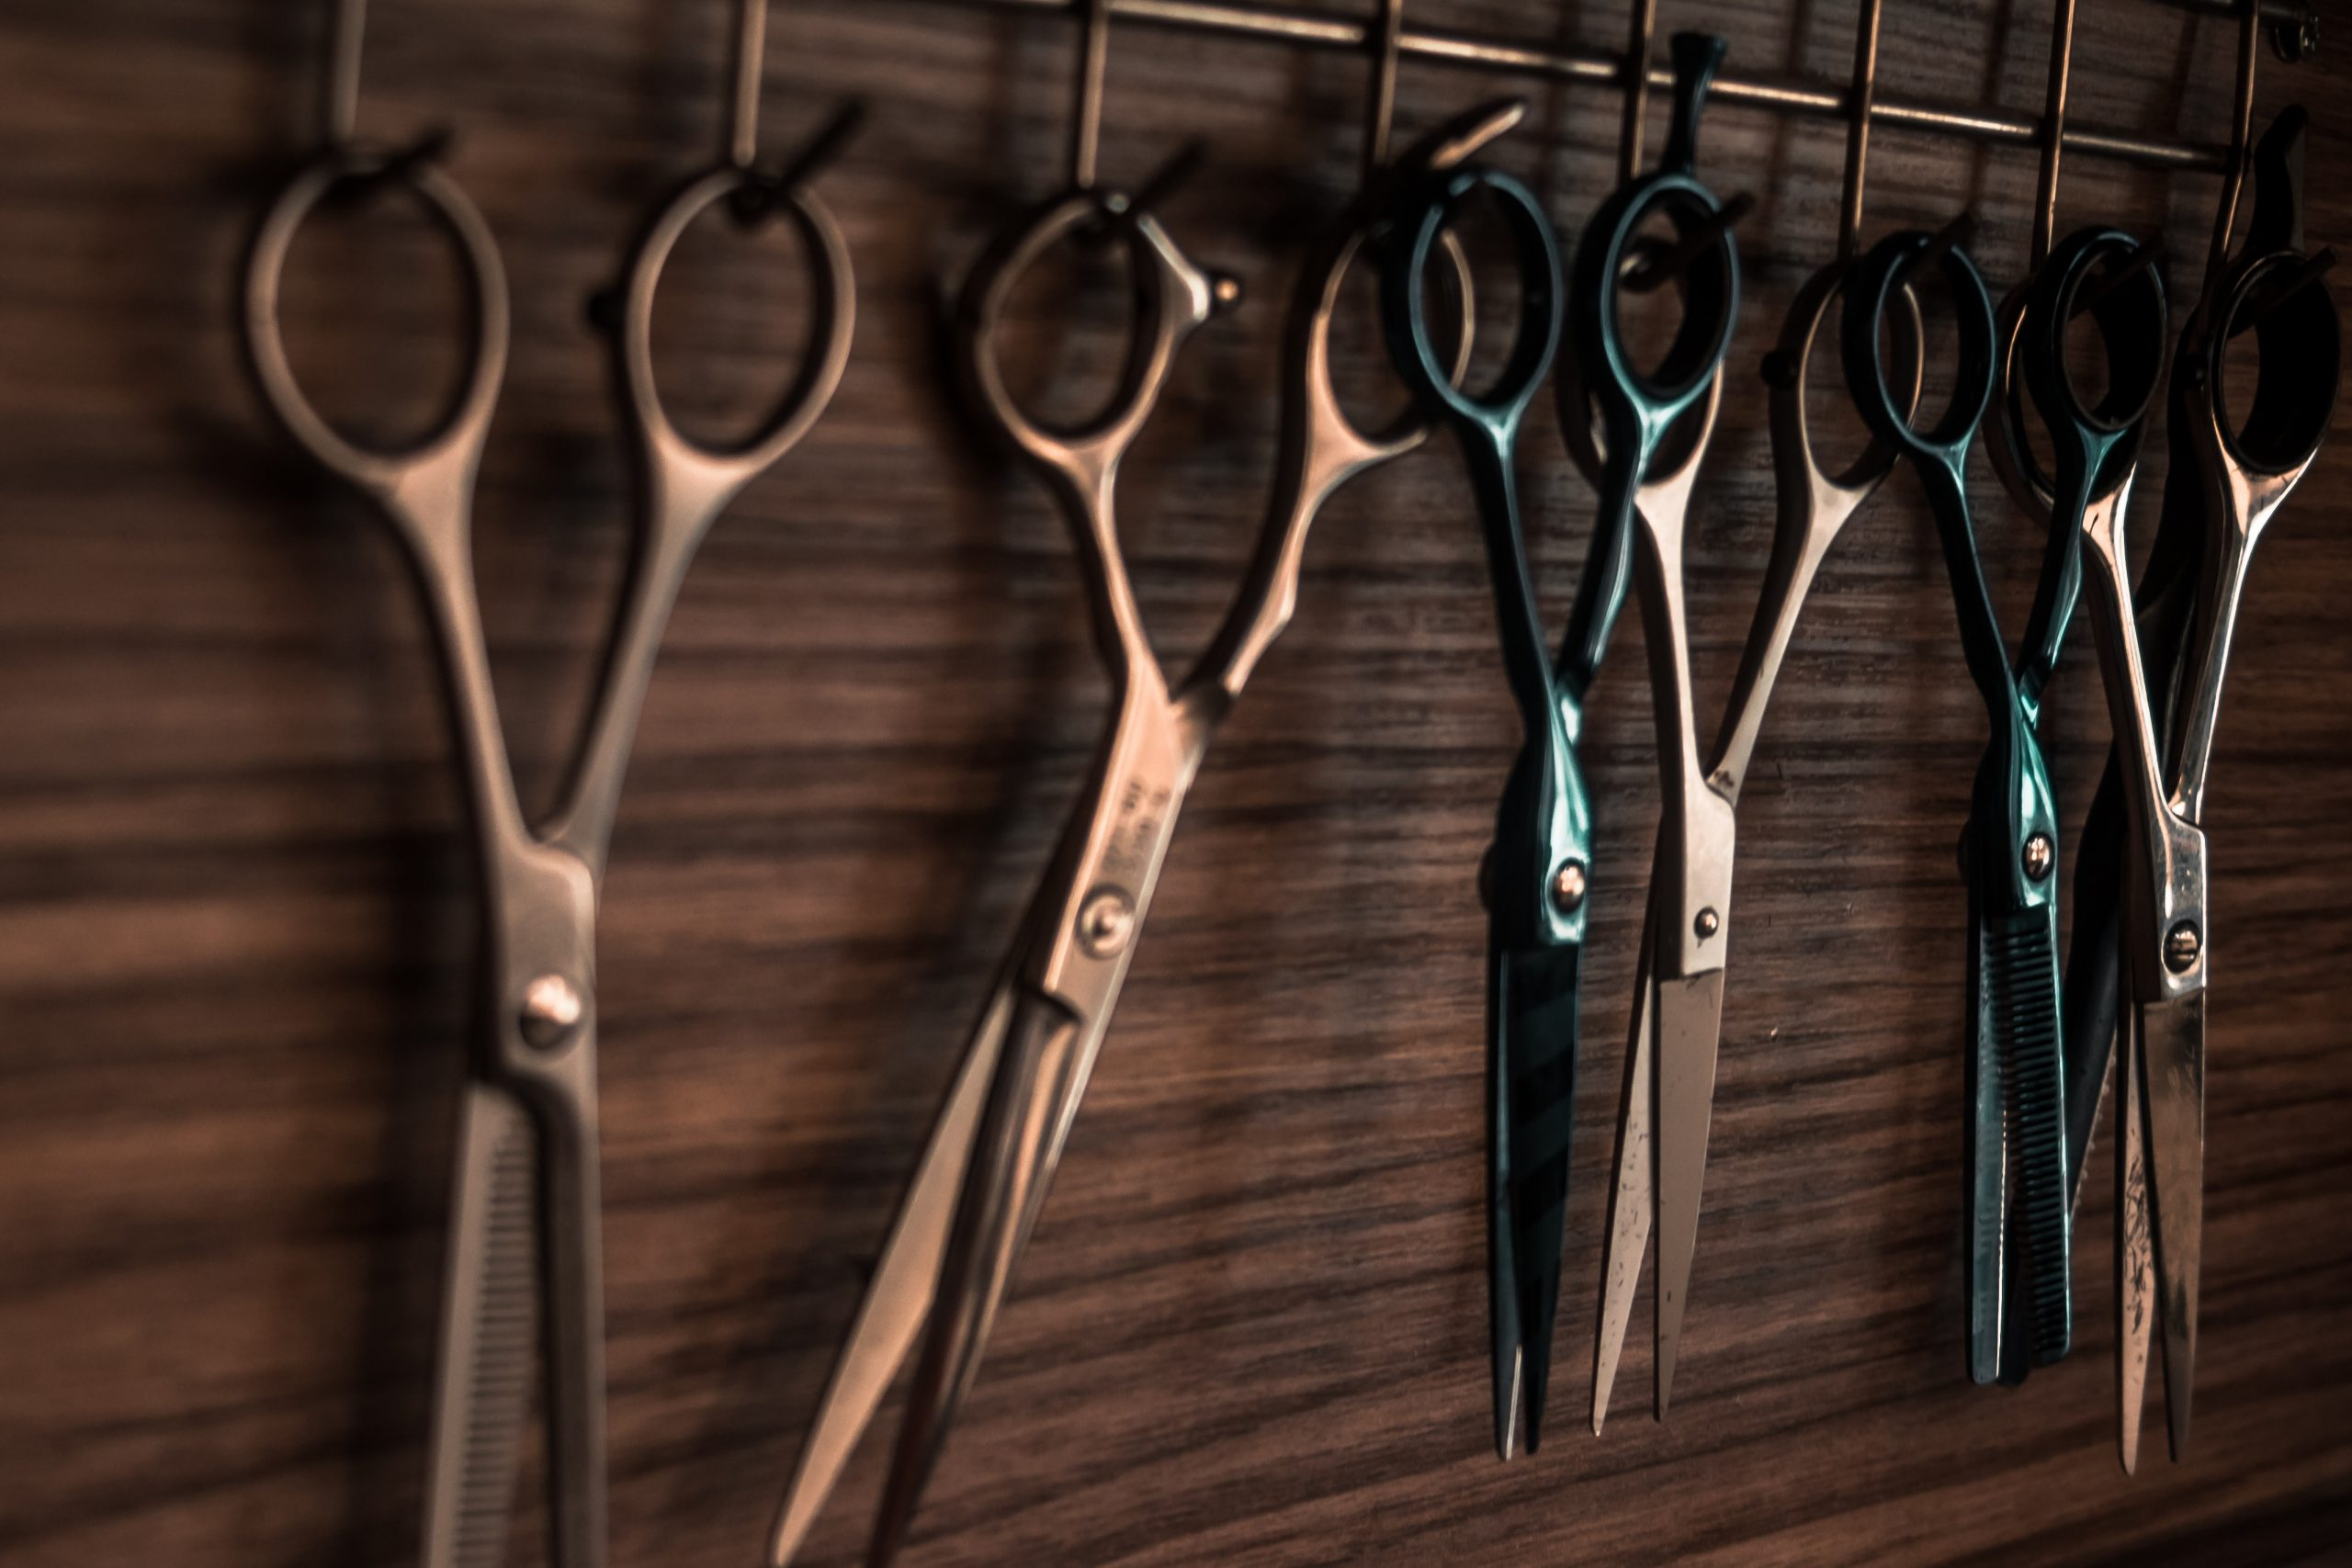 pairs of scissors hanging in a row